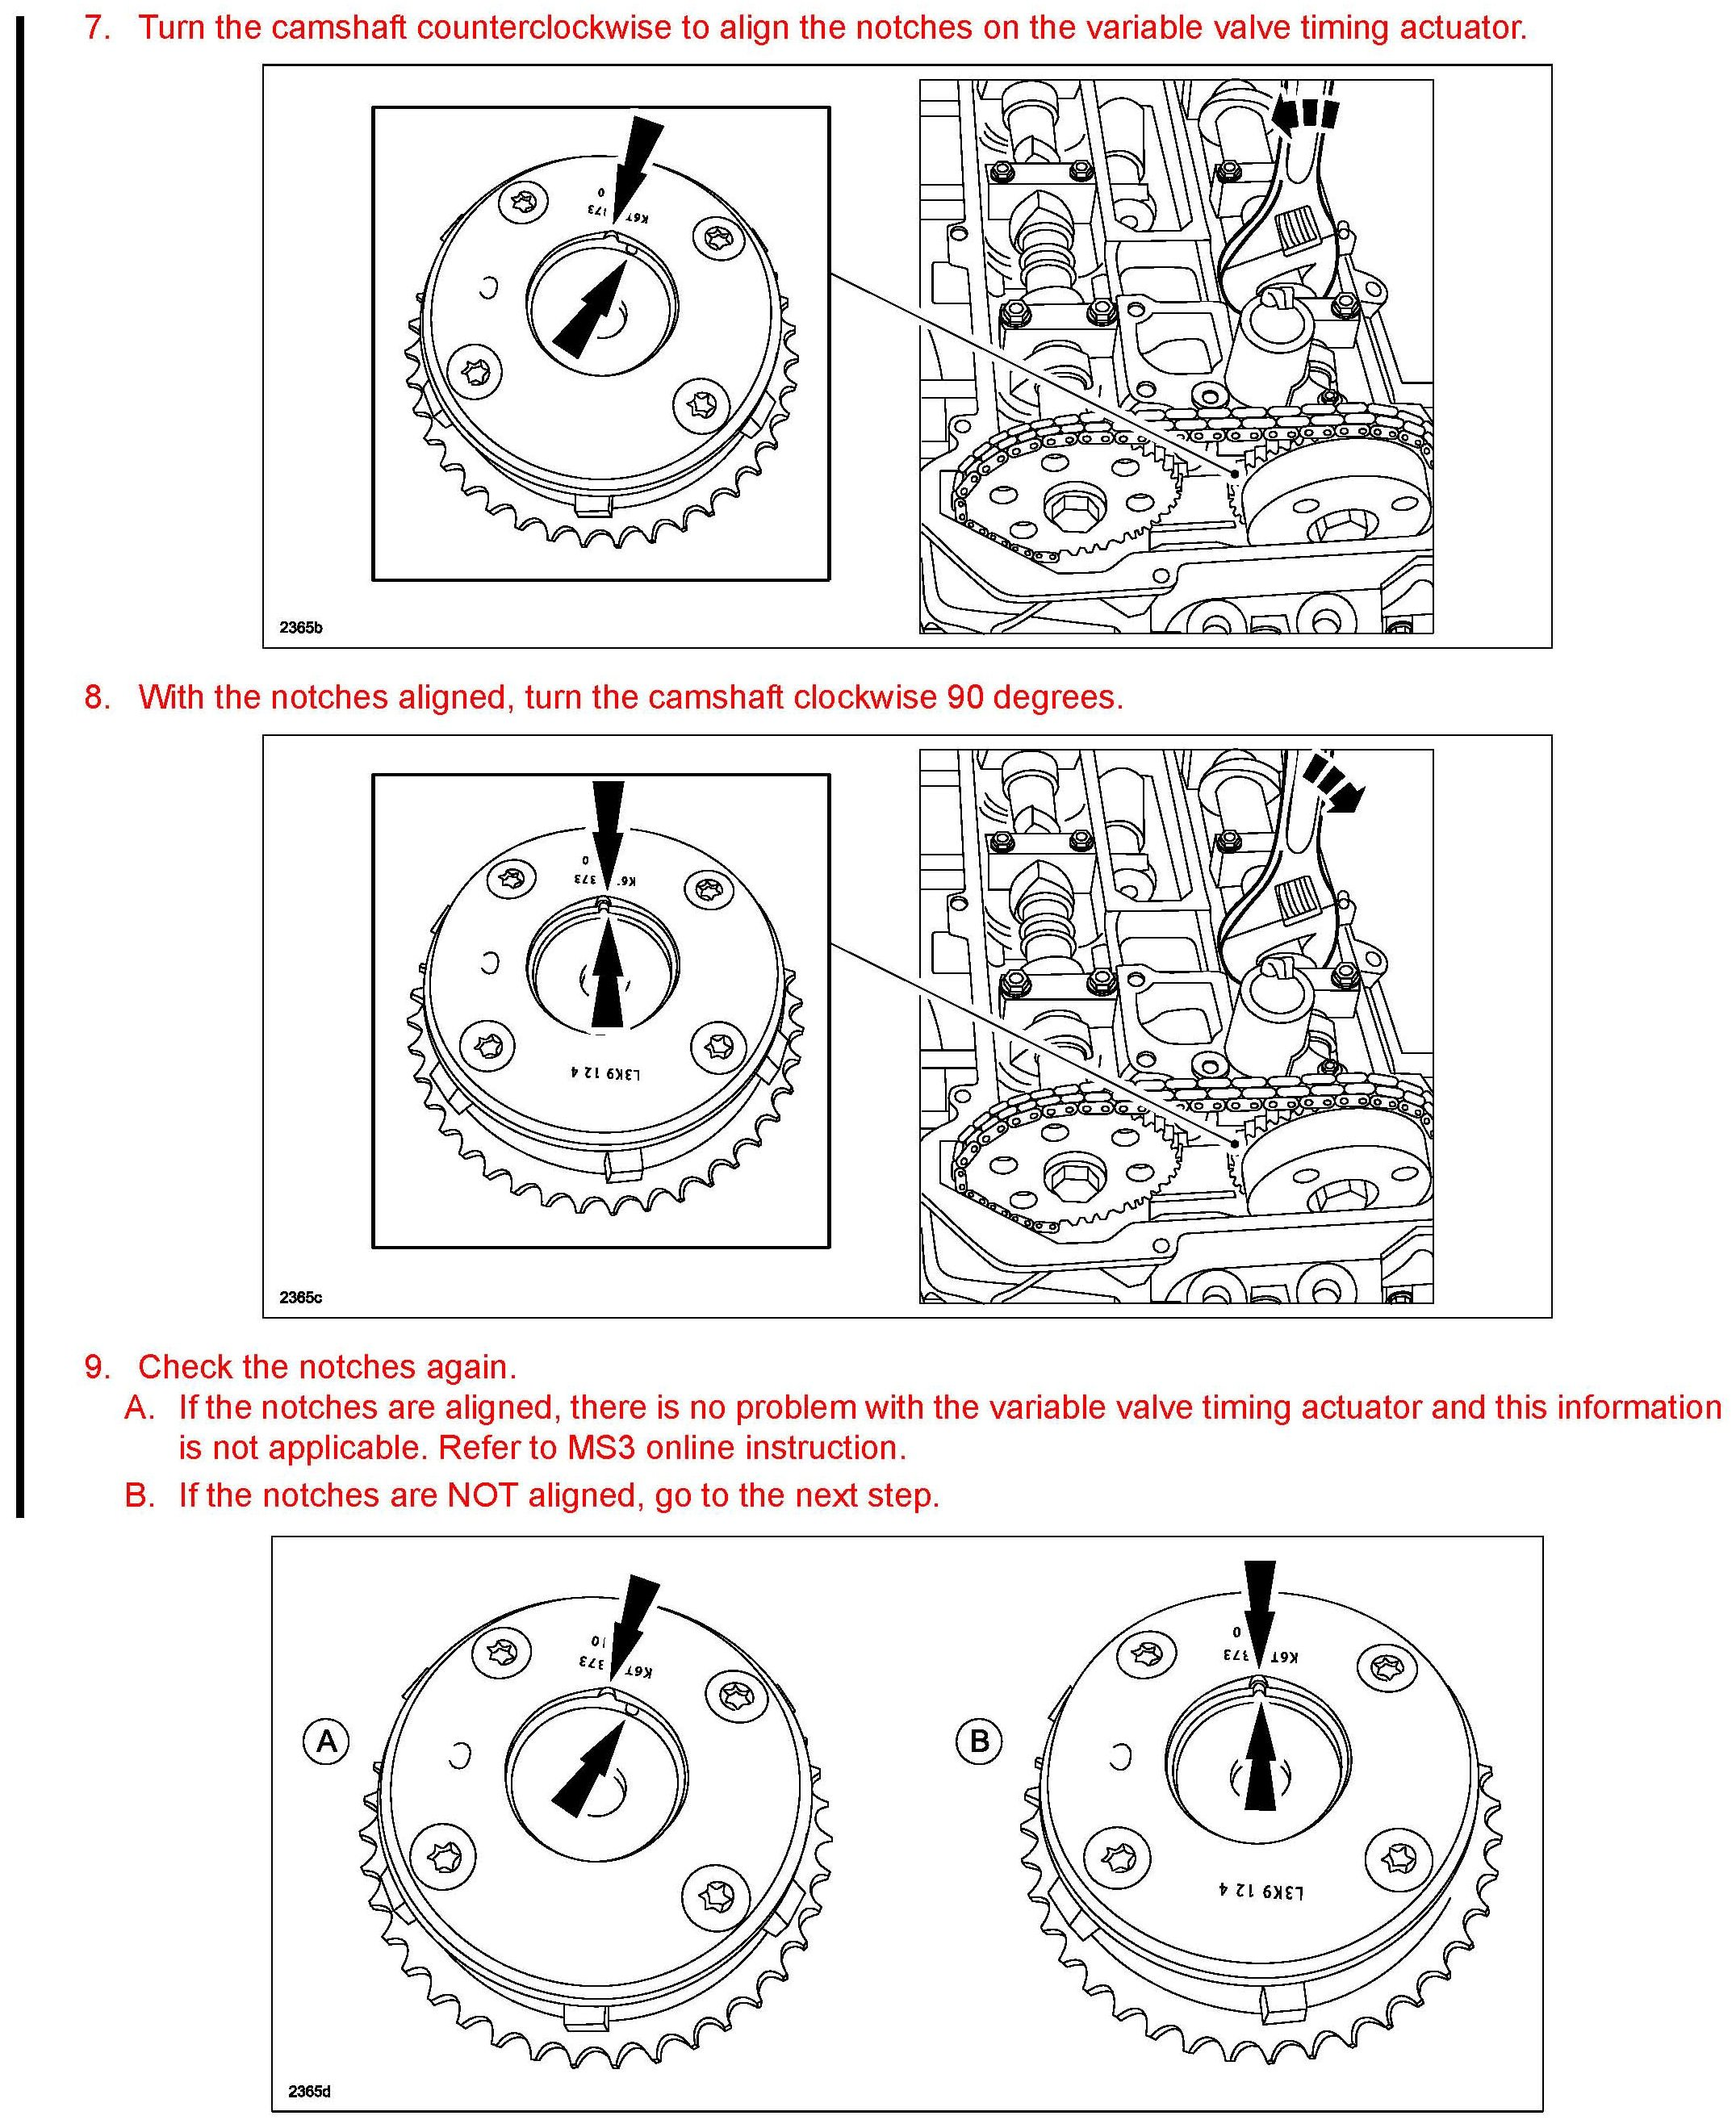 What Is The Timing Marks On The Vvt On Intake Cam I: What Is The Timing Marks On The Vvt On Intake Cam, I